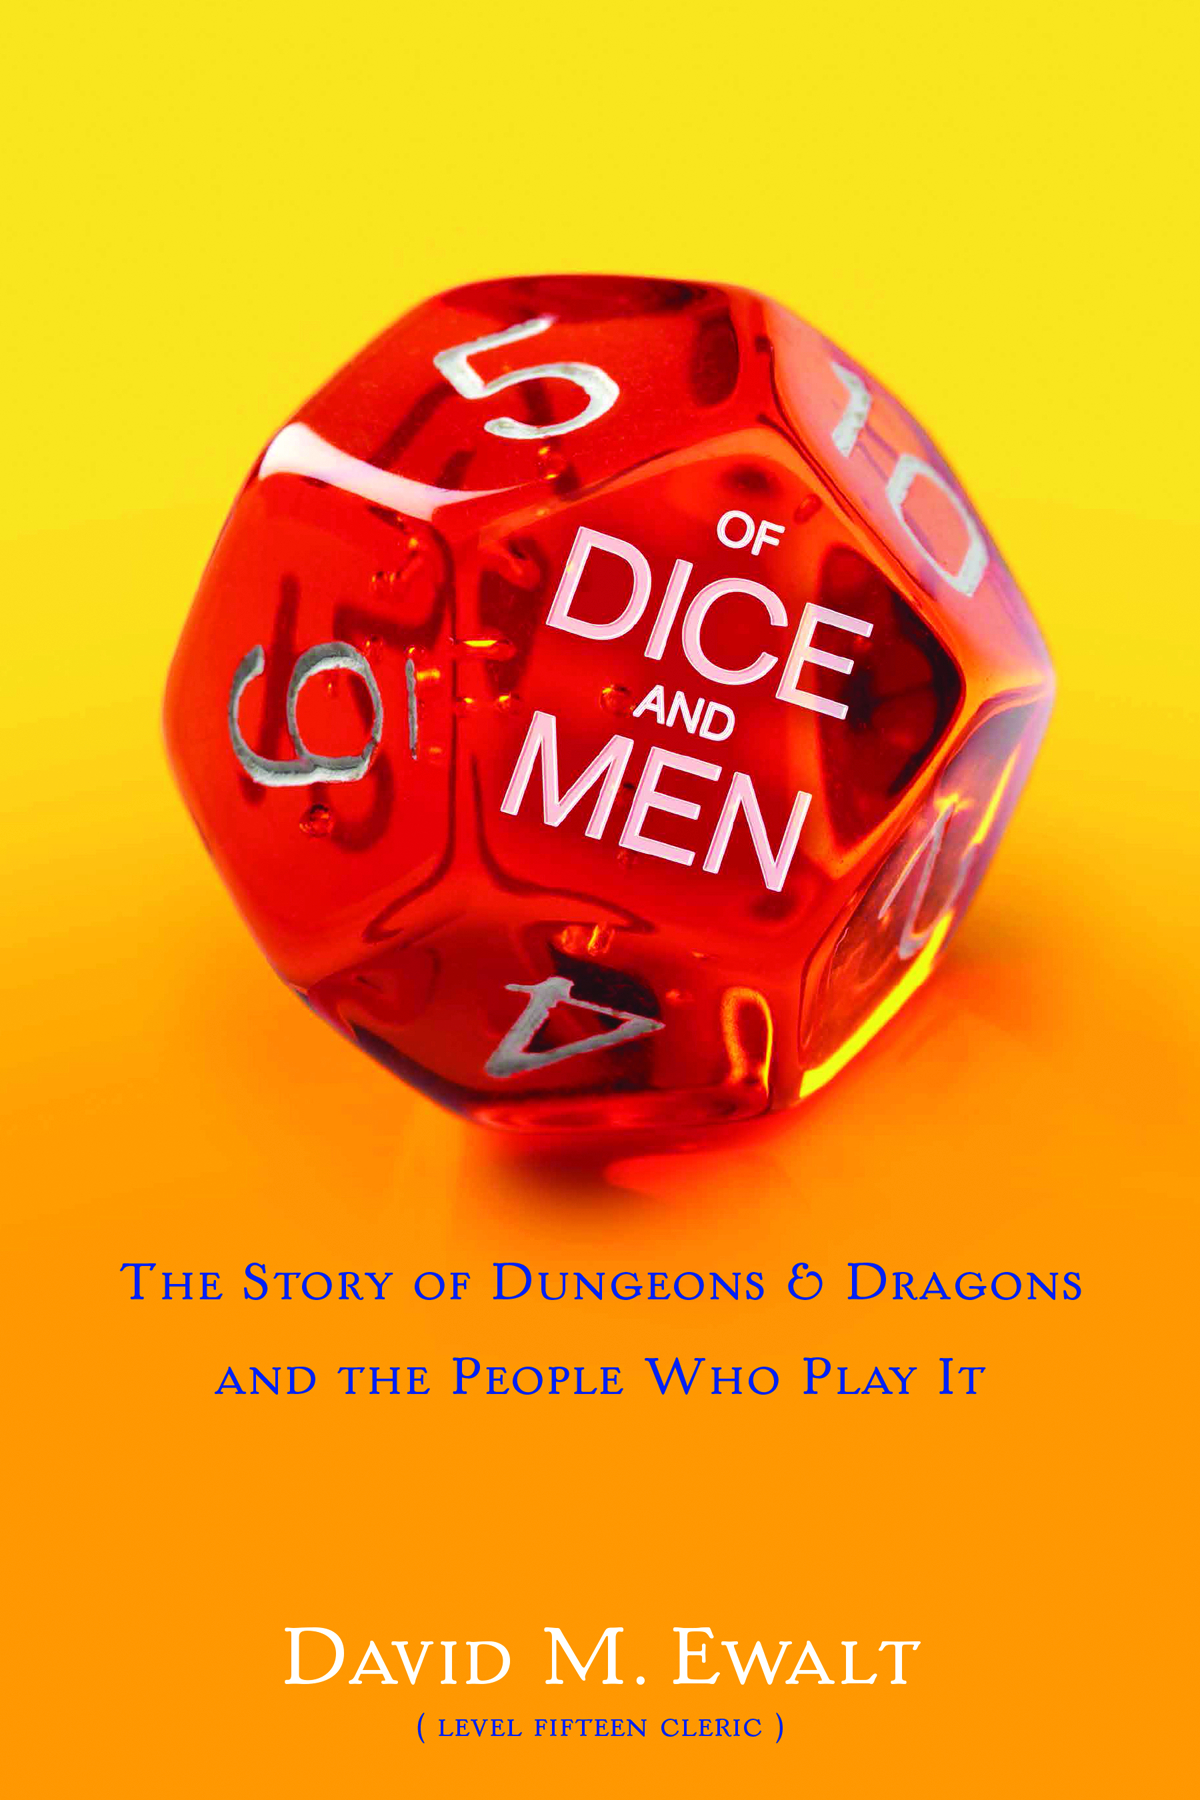 OF DICE AND MEN HC